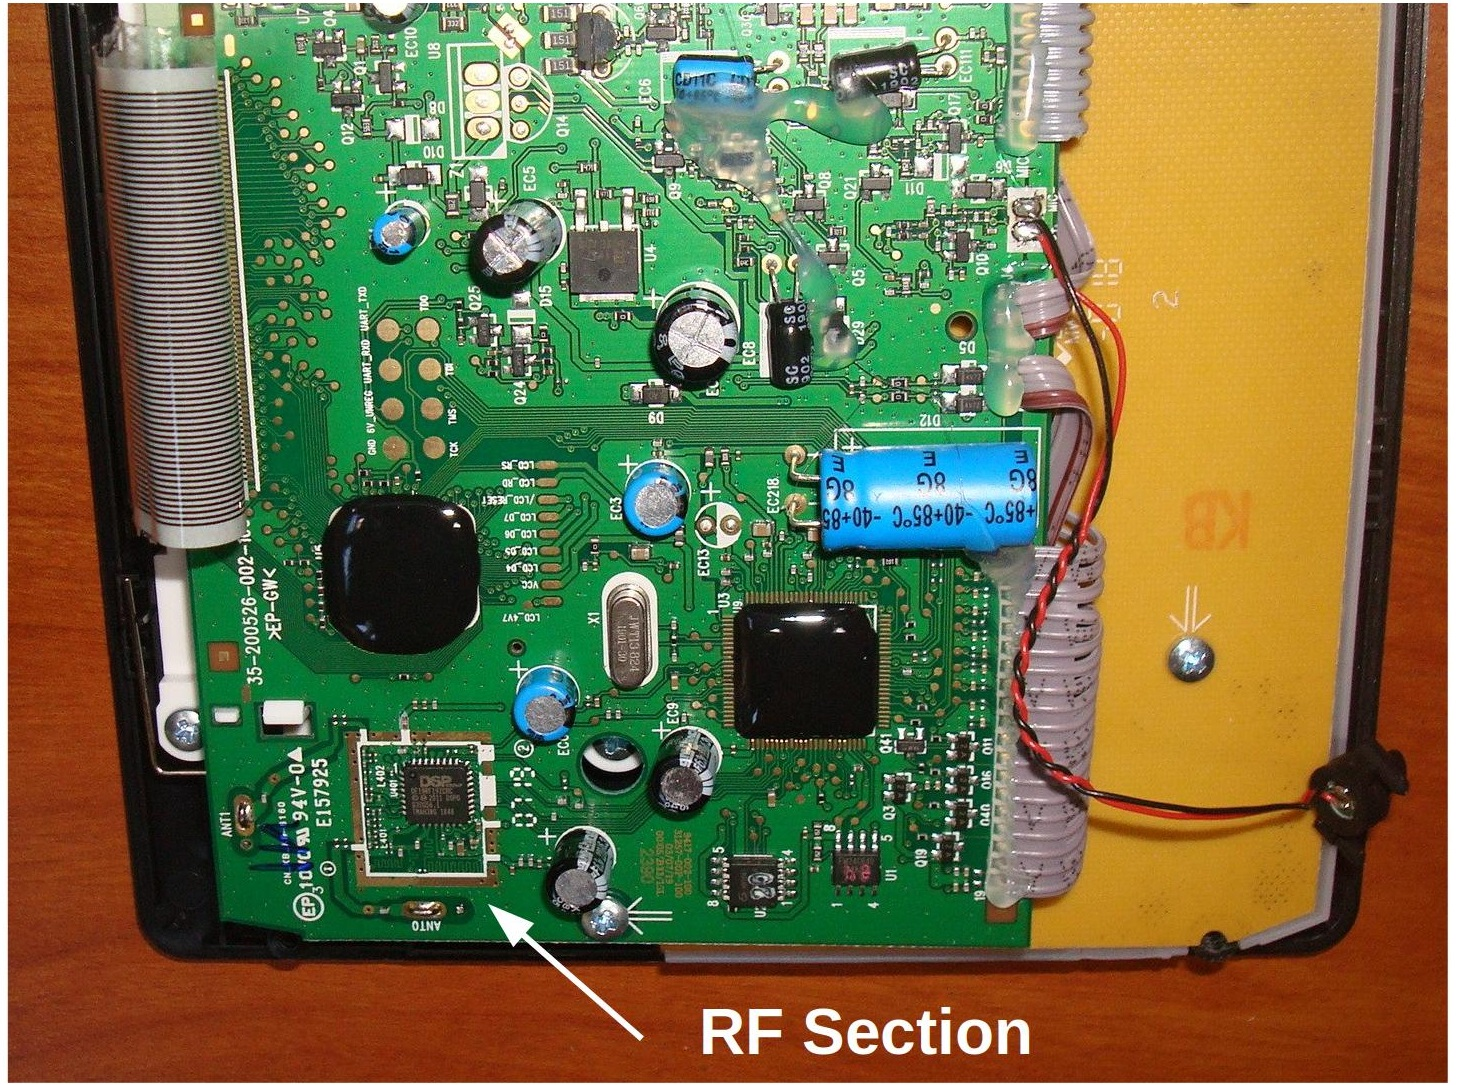 Figure 3: Base station printed circuit board showing the location of the RF section.